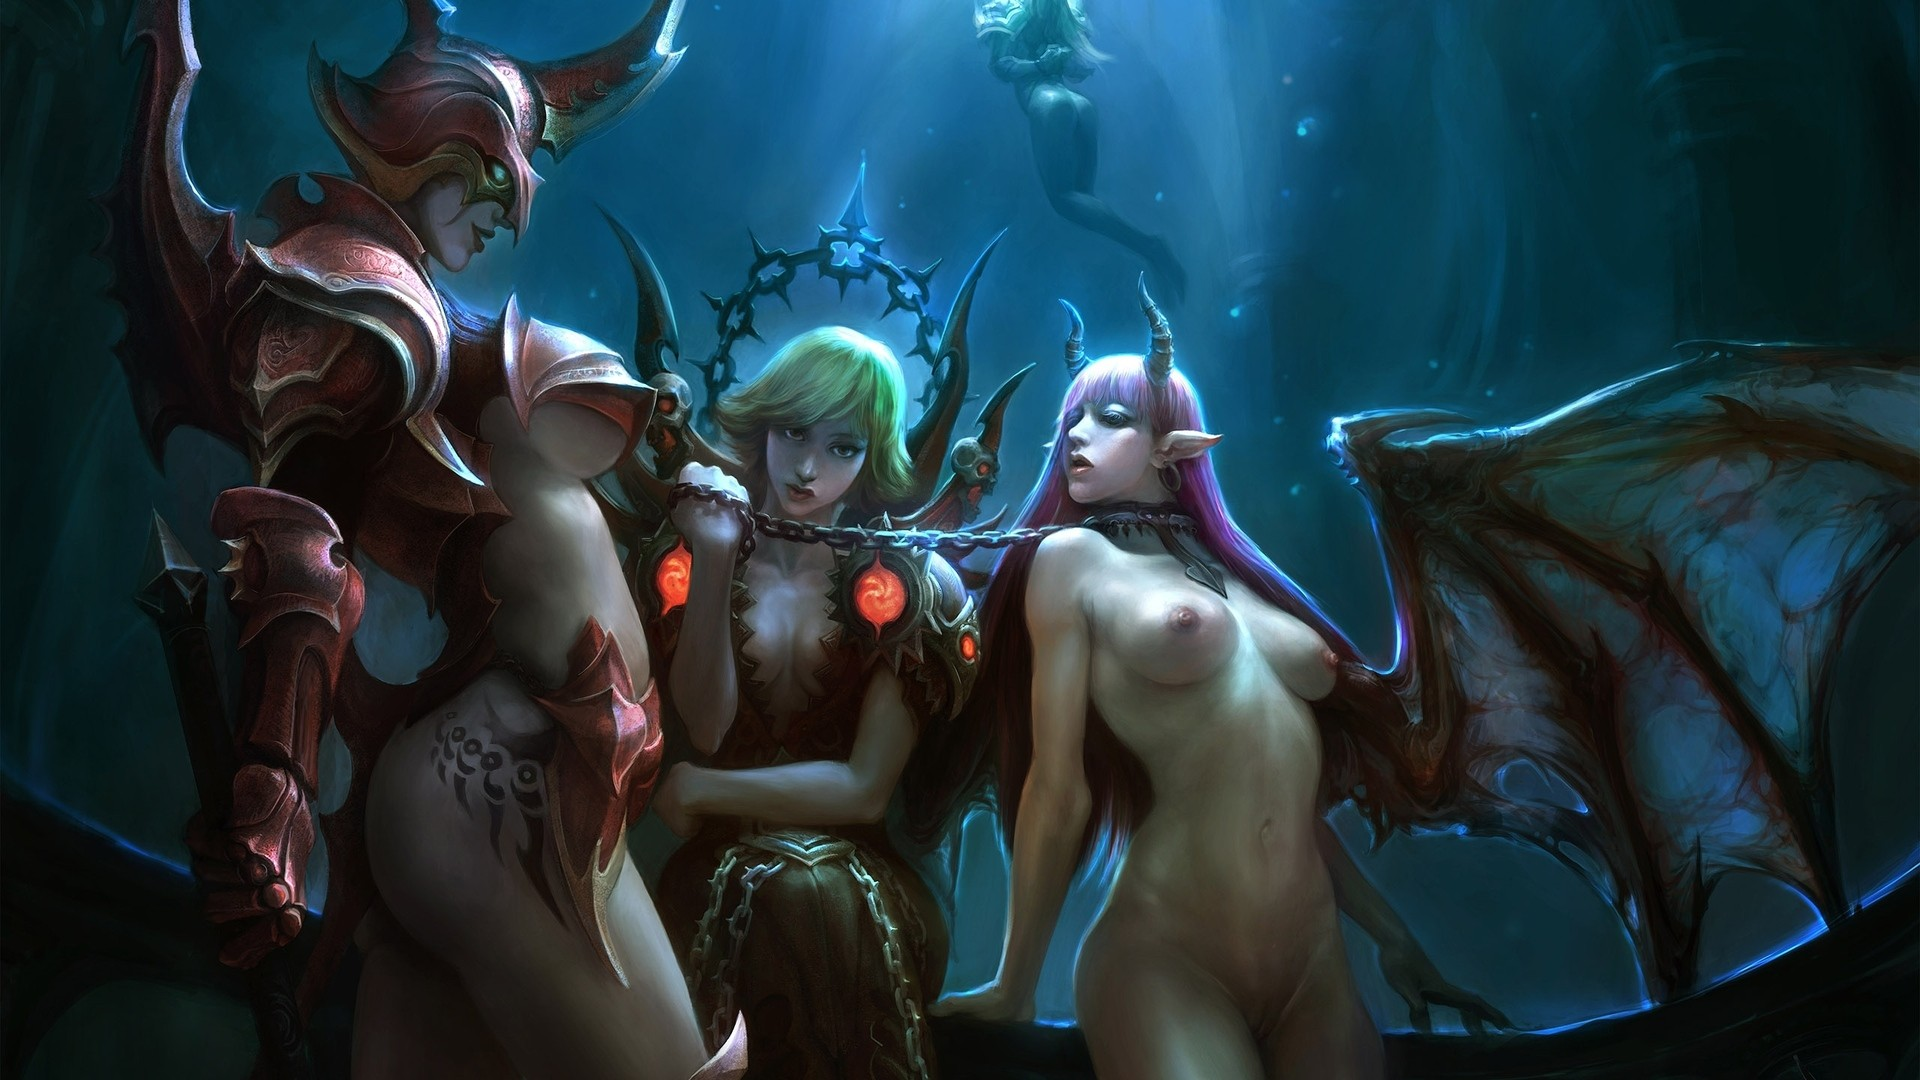 Succubus full naked pornos picture